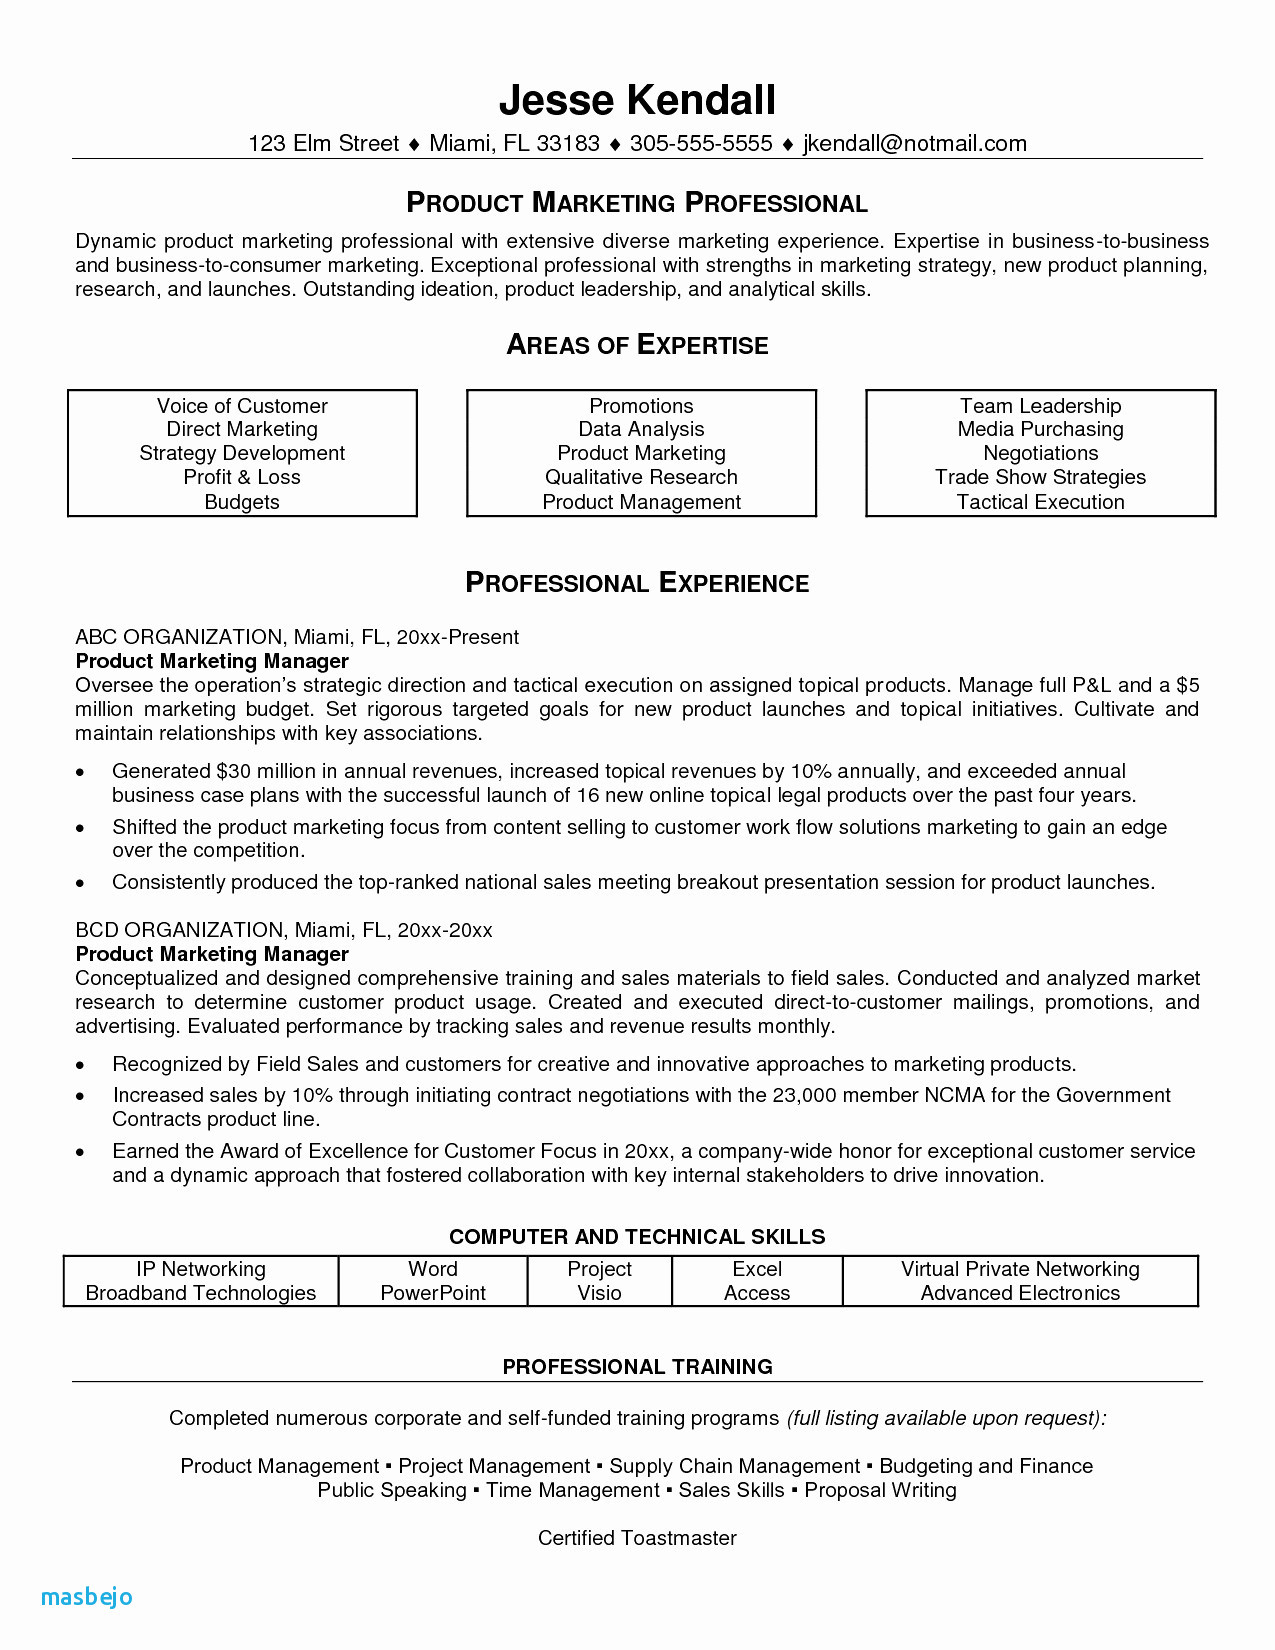 Product Marketing Manager Resume - Marketing Skills Resume Elegant Research Skills Resume New Paralegal